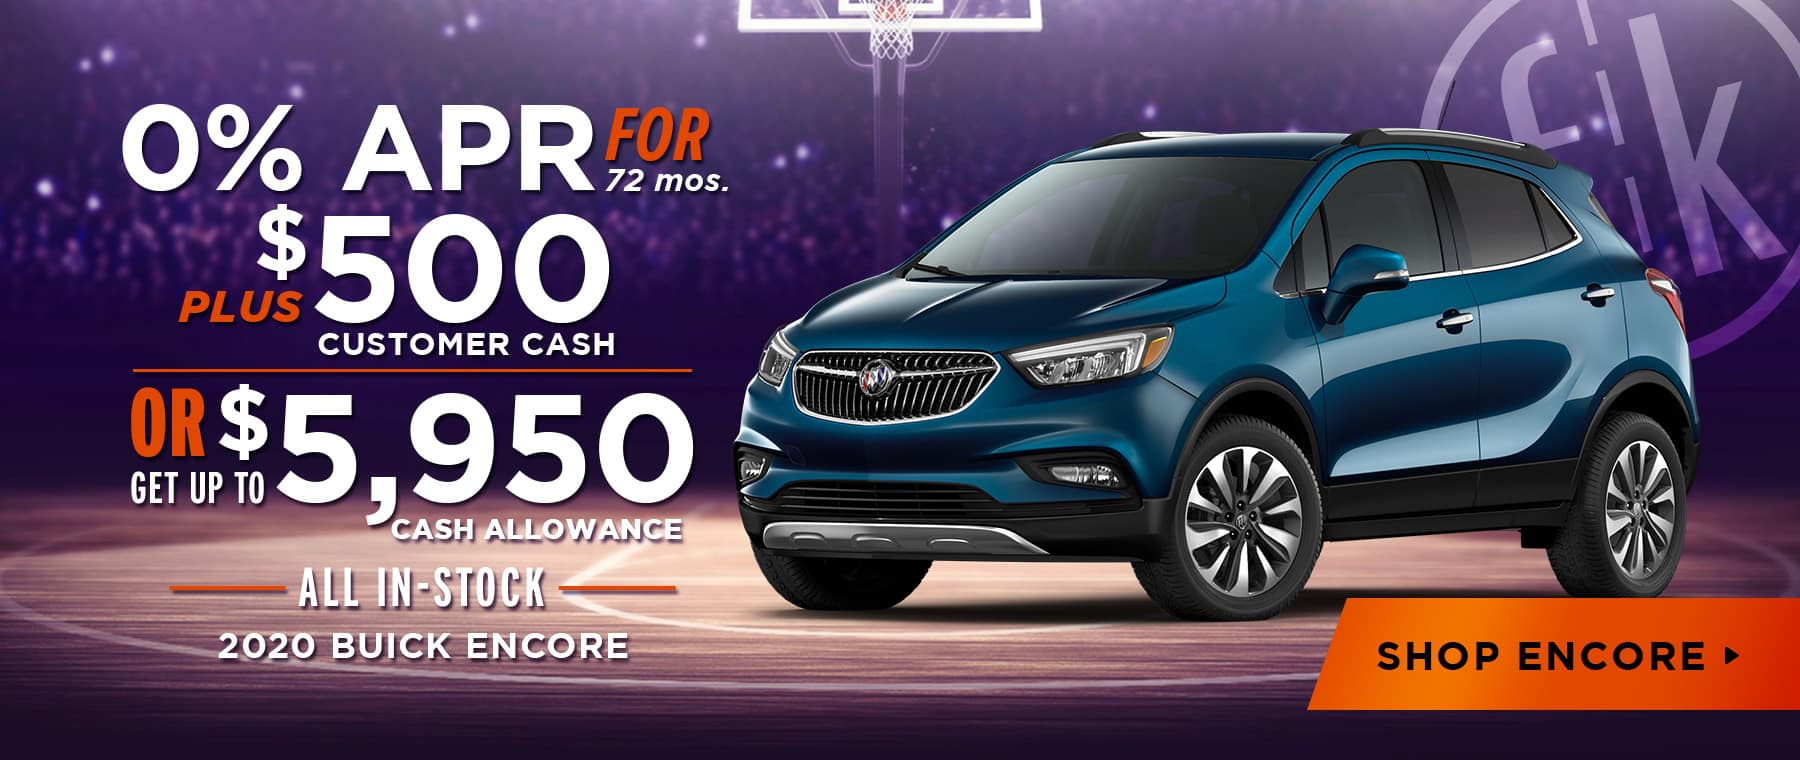 2020 Encore 0% for 72 mos + $500 Customer Cash OR Up To $5,950 Cash Allowance